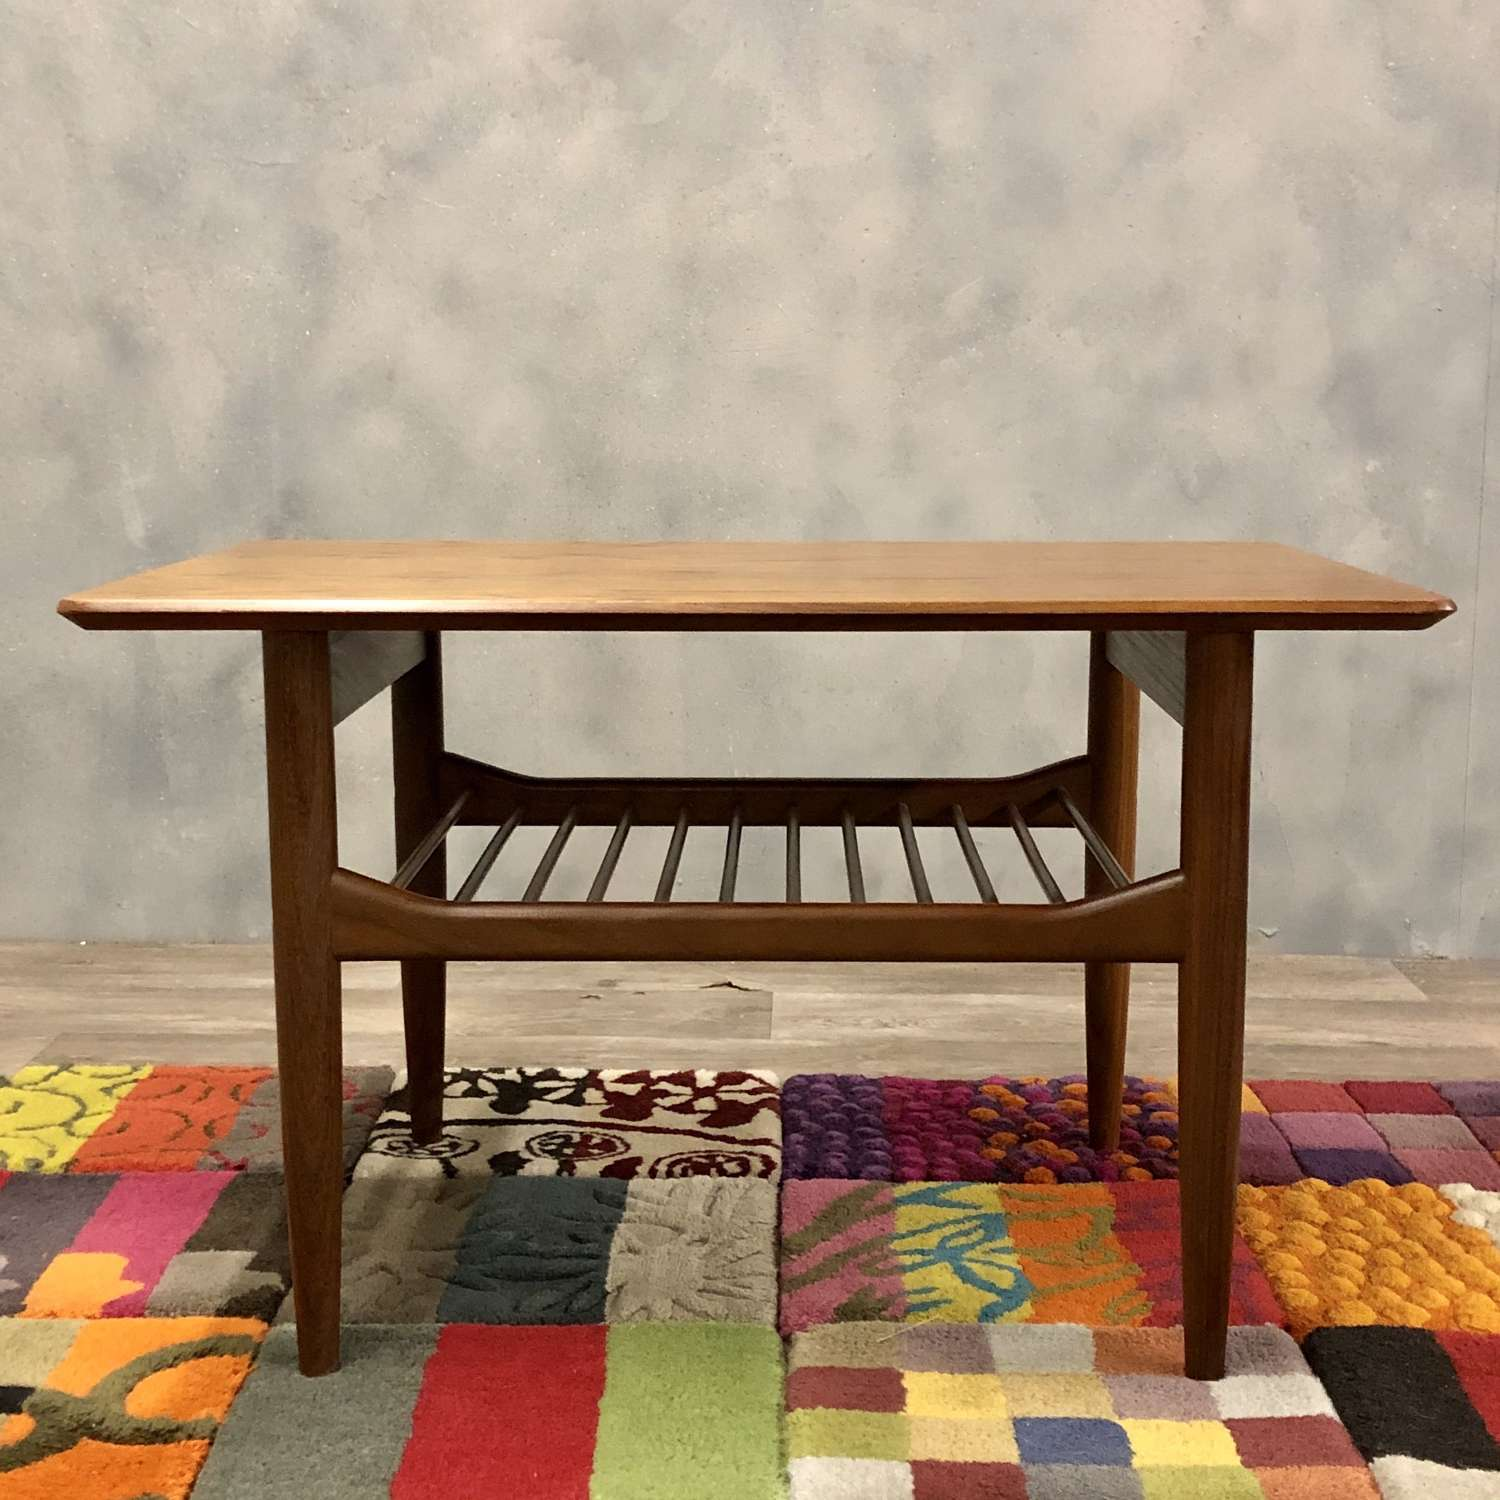 A stunning & rare midcentury Kofod Larsen for Gplan coffee table